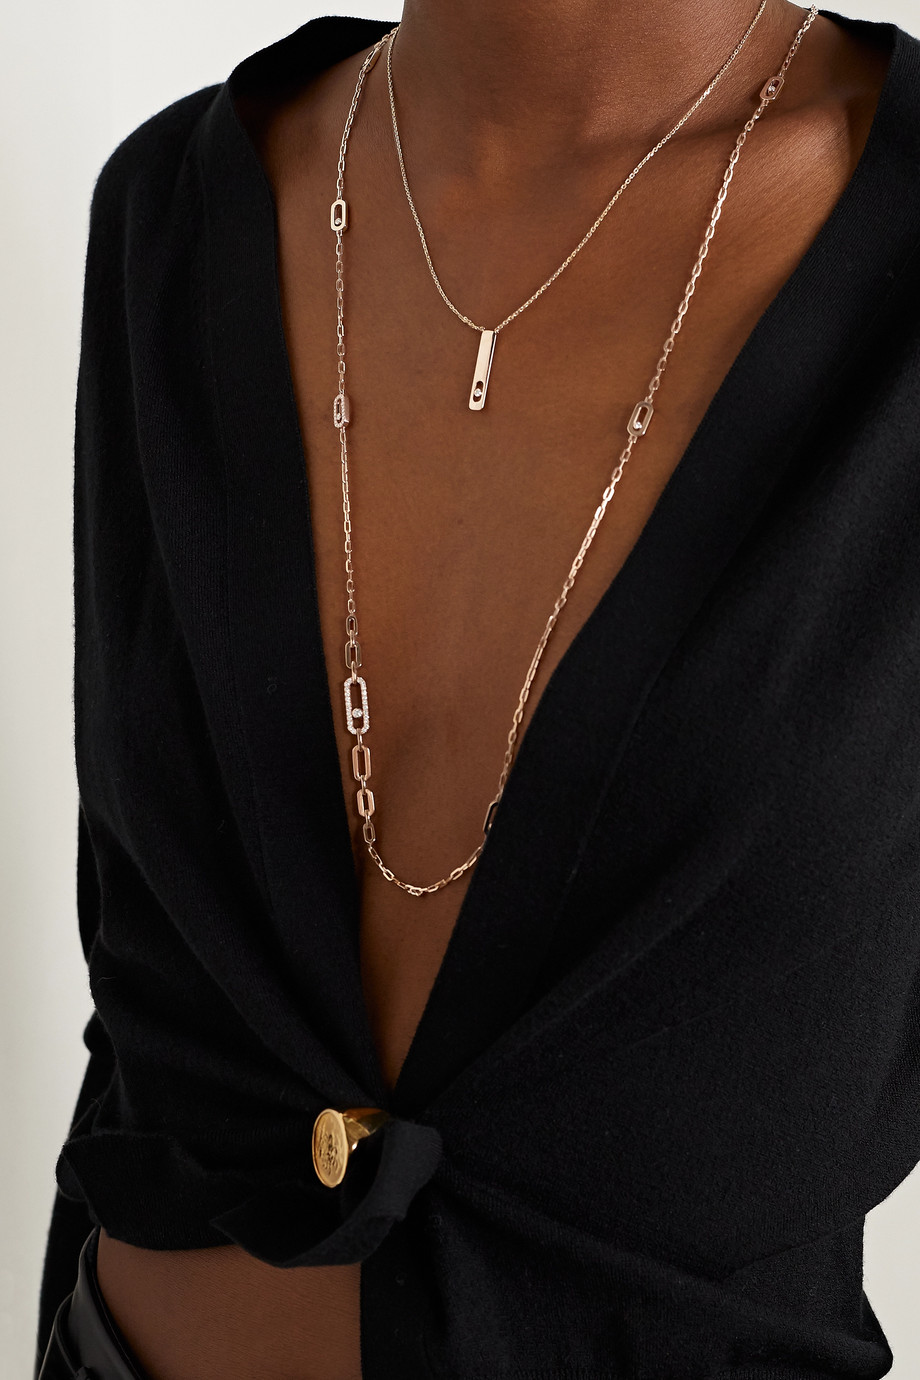 Messika Move Uno 18-karat rose gold diamond necklace